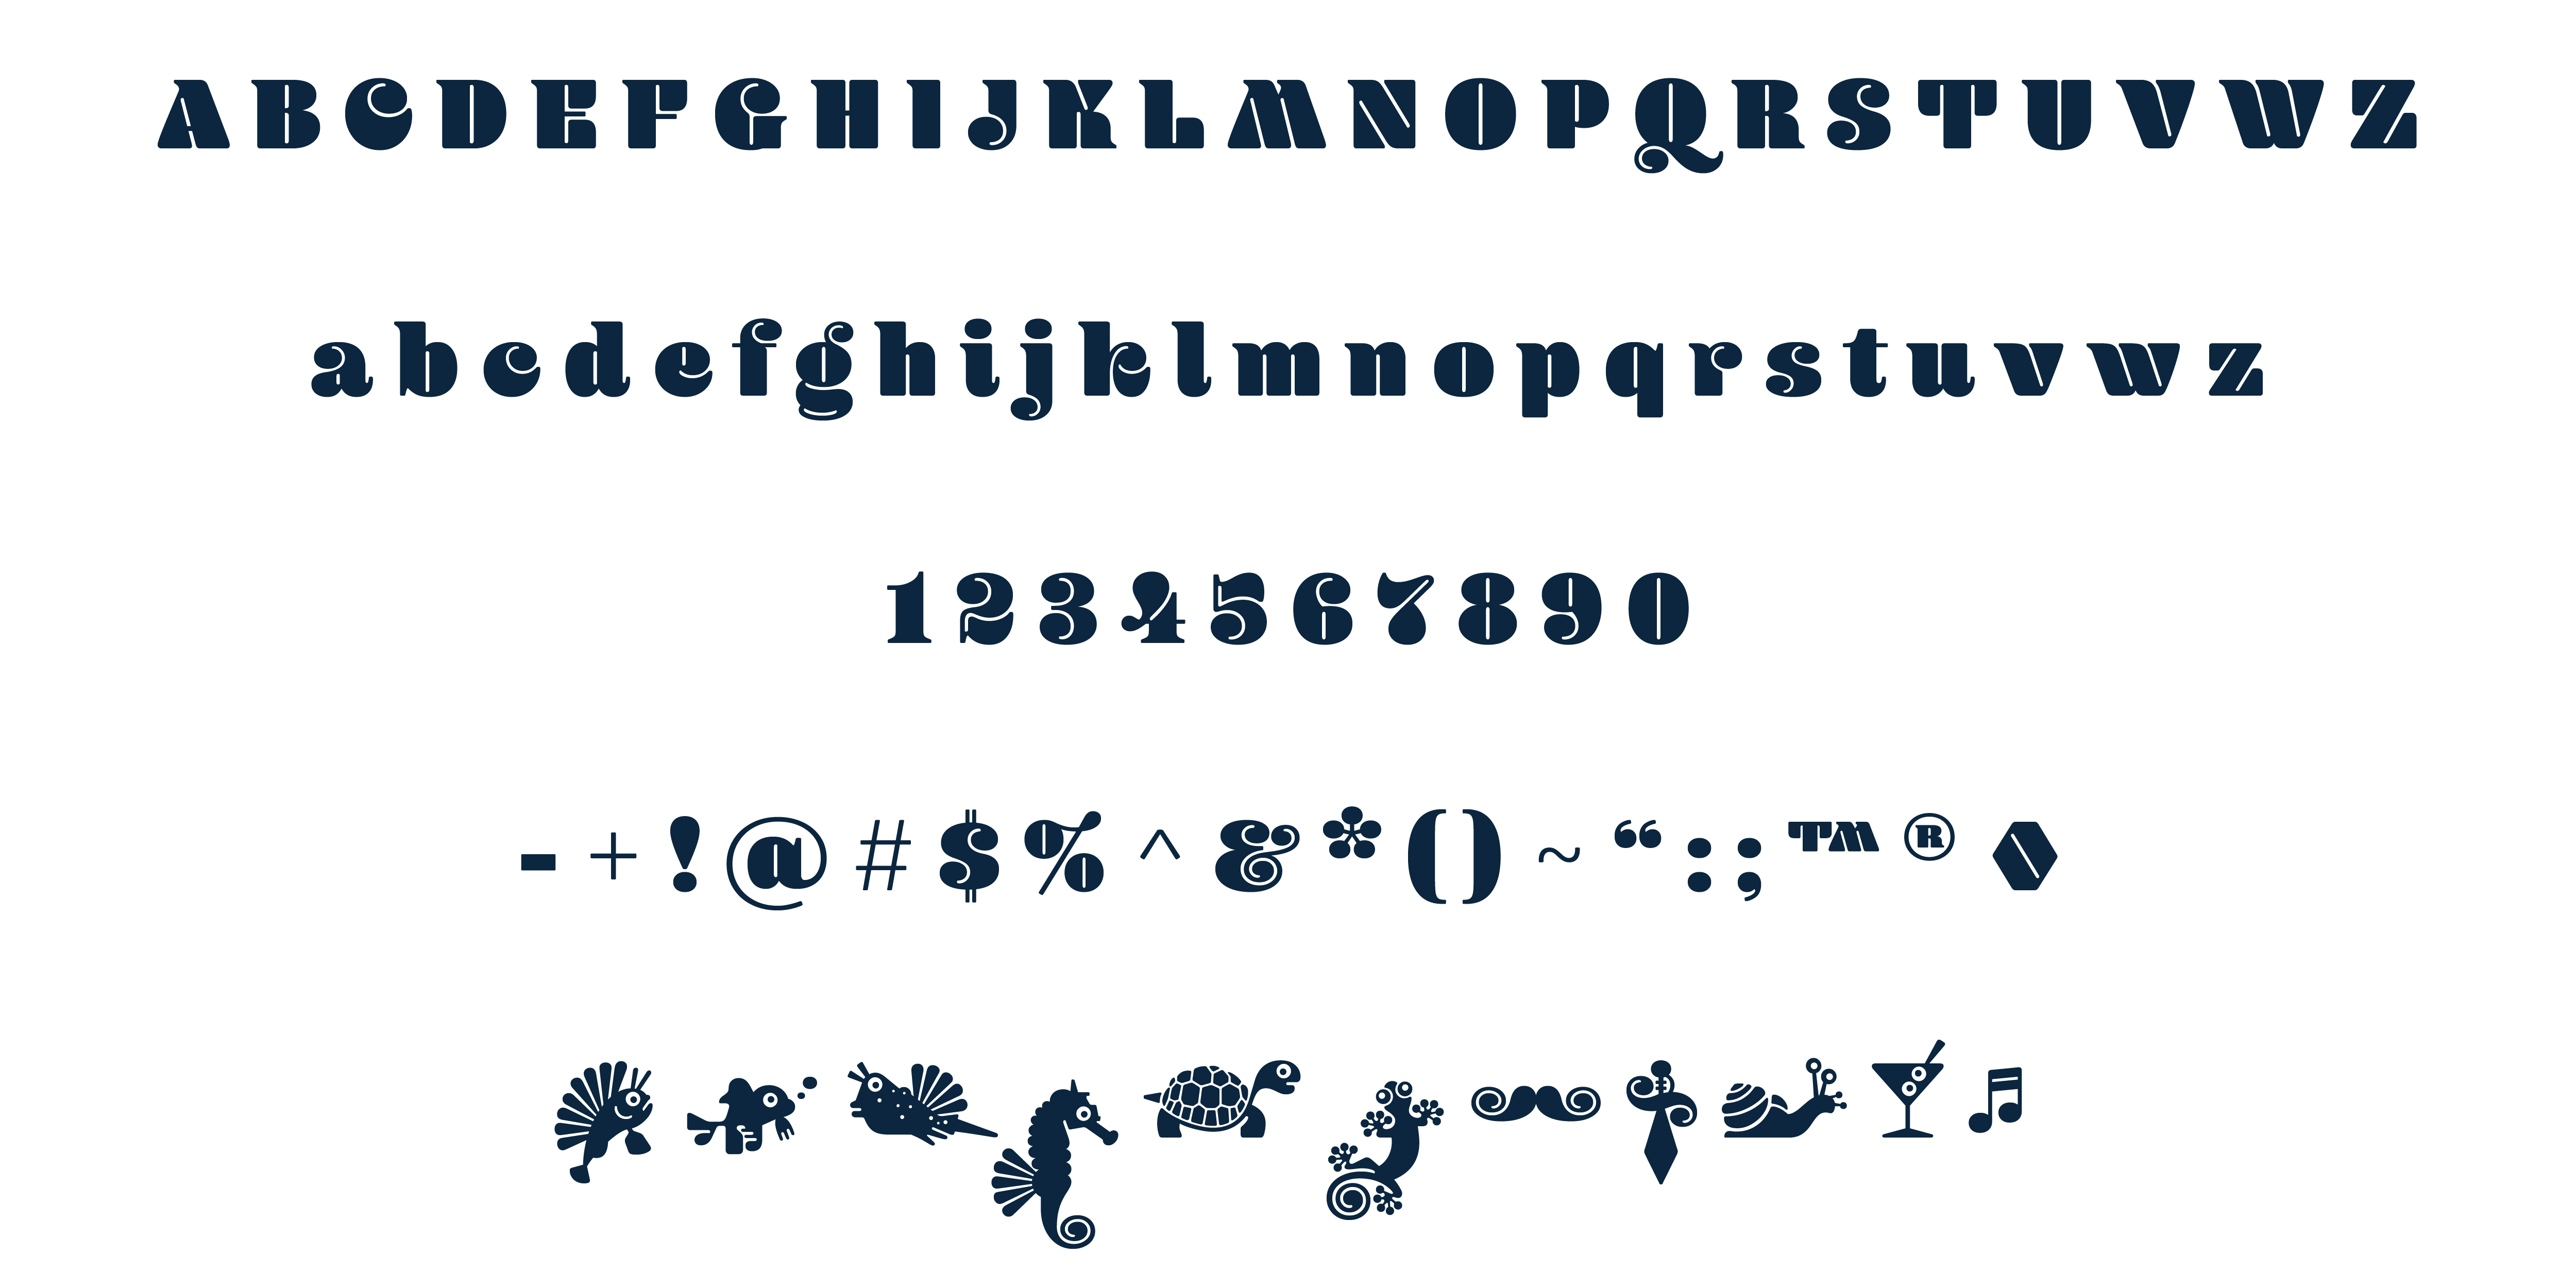 Blenny typeface typed out as the alphabet, numbers 0 to 9, and assorted glyphs in a dark blue.